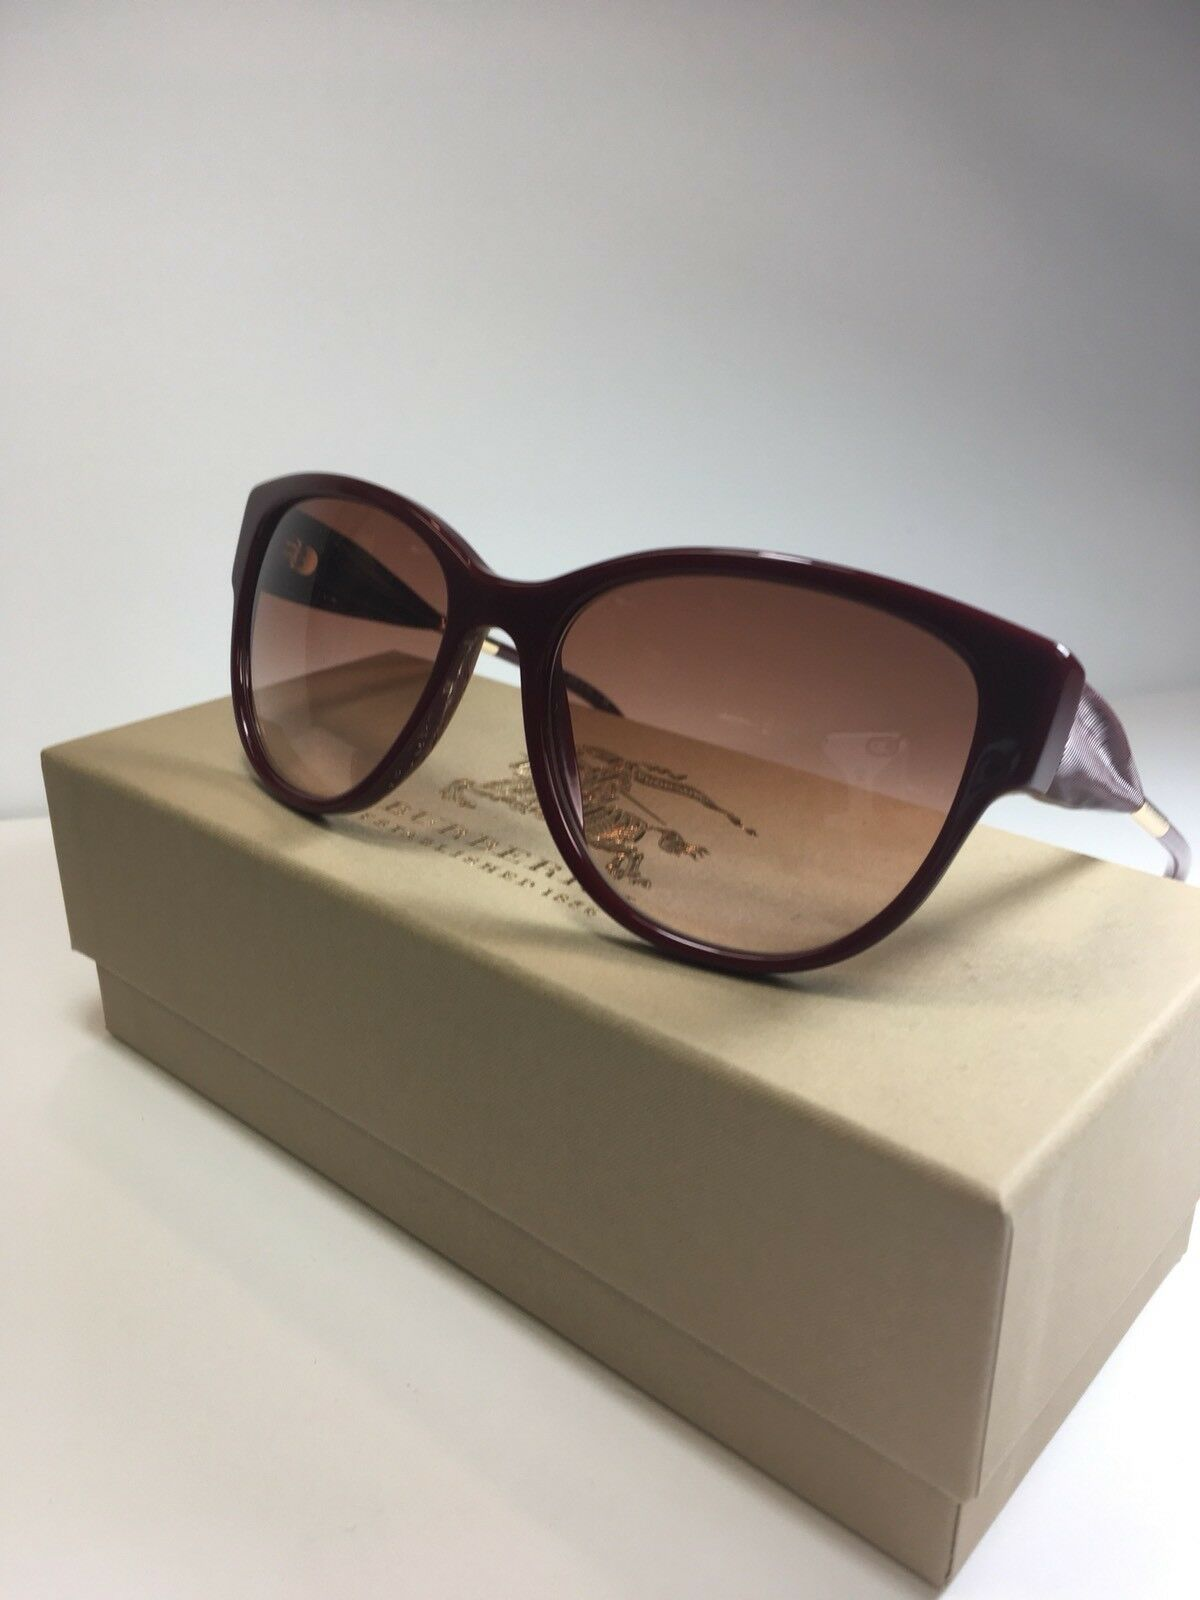 85d97b590d2f Burberry Women s Sunglasses B 4190 3403 13 Red Authentic B4190 56-17 for  sale online